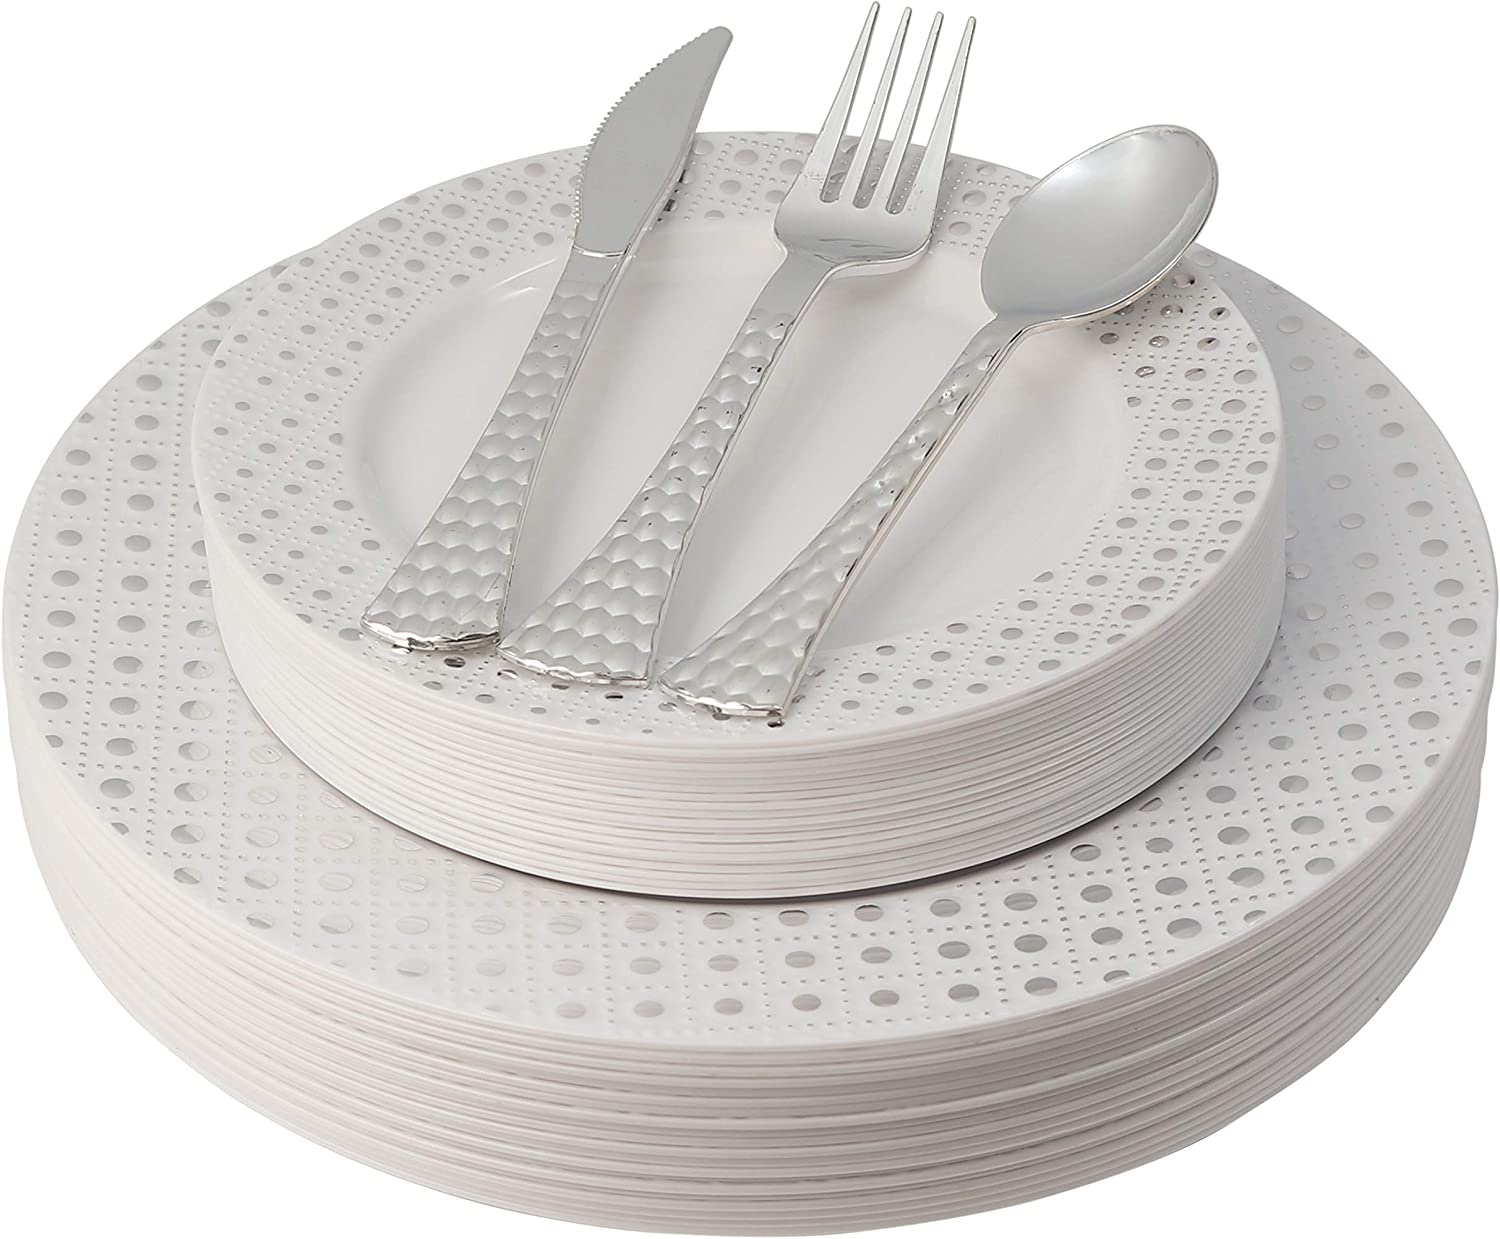 White and Silver Plastic Plates & Cutlery Set, 100 Piece Elegant Disposable Plates Plastic & Silverware Set   Includes 20 Dinner Plates & Salad Plates, 20 Forks, Spoons, Knives - Posh Setting